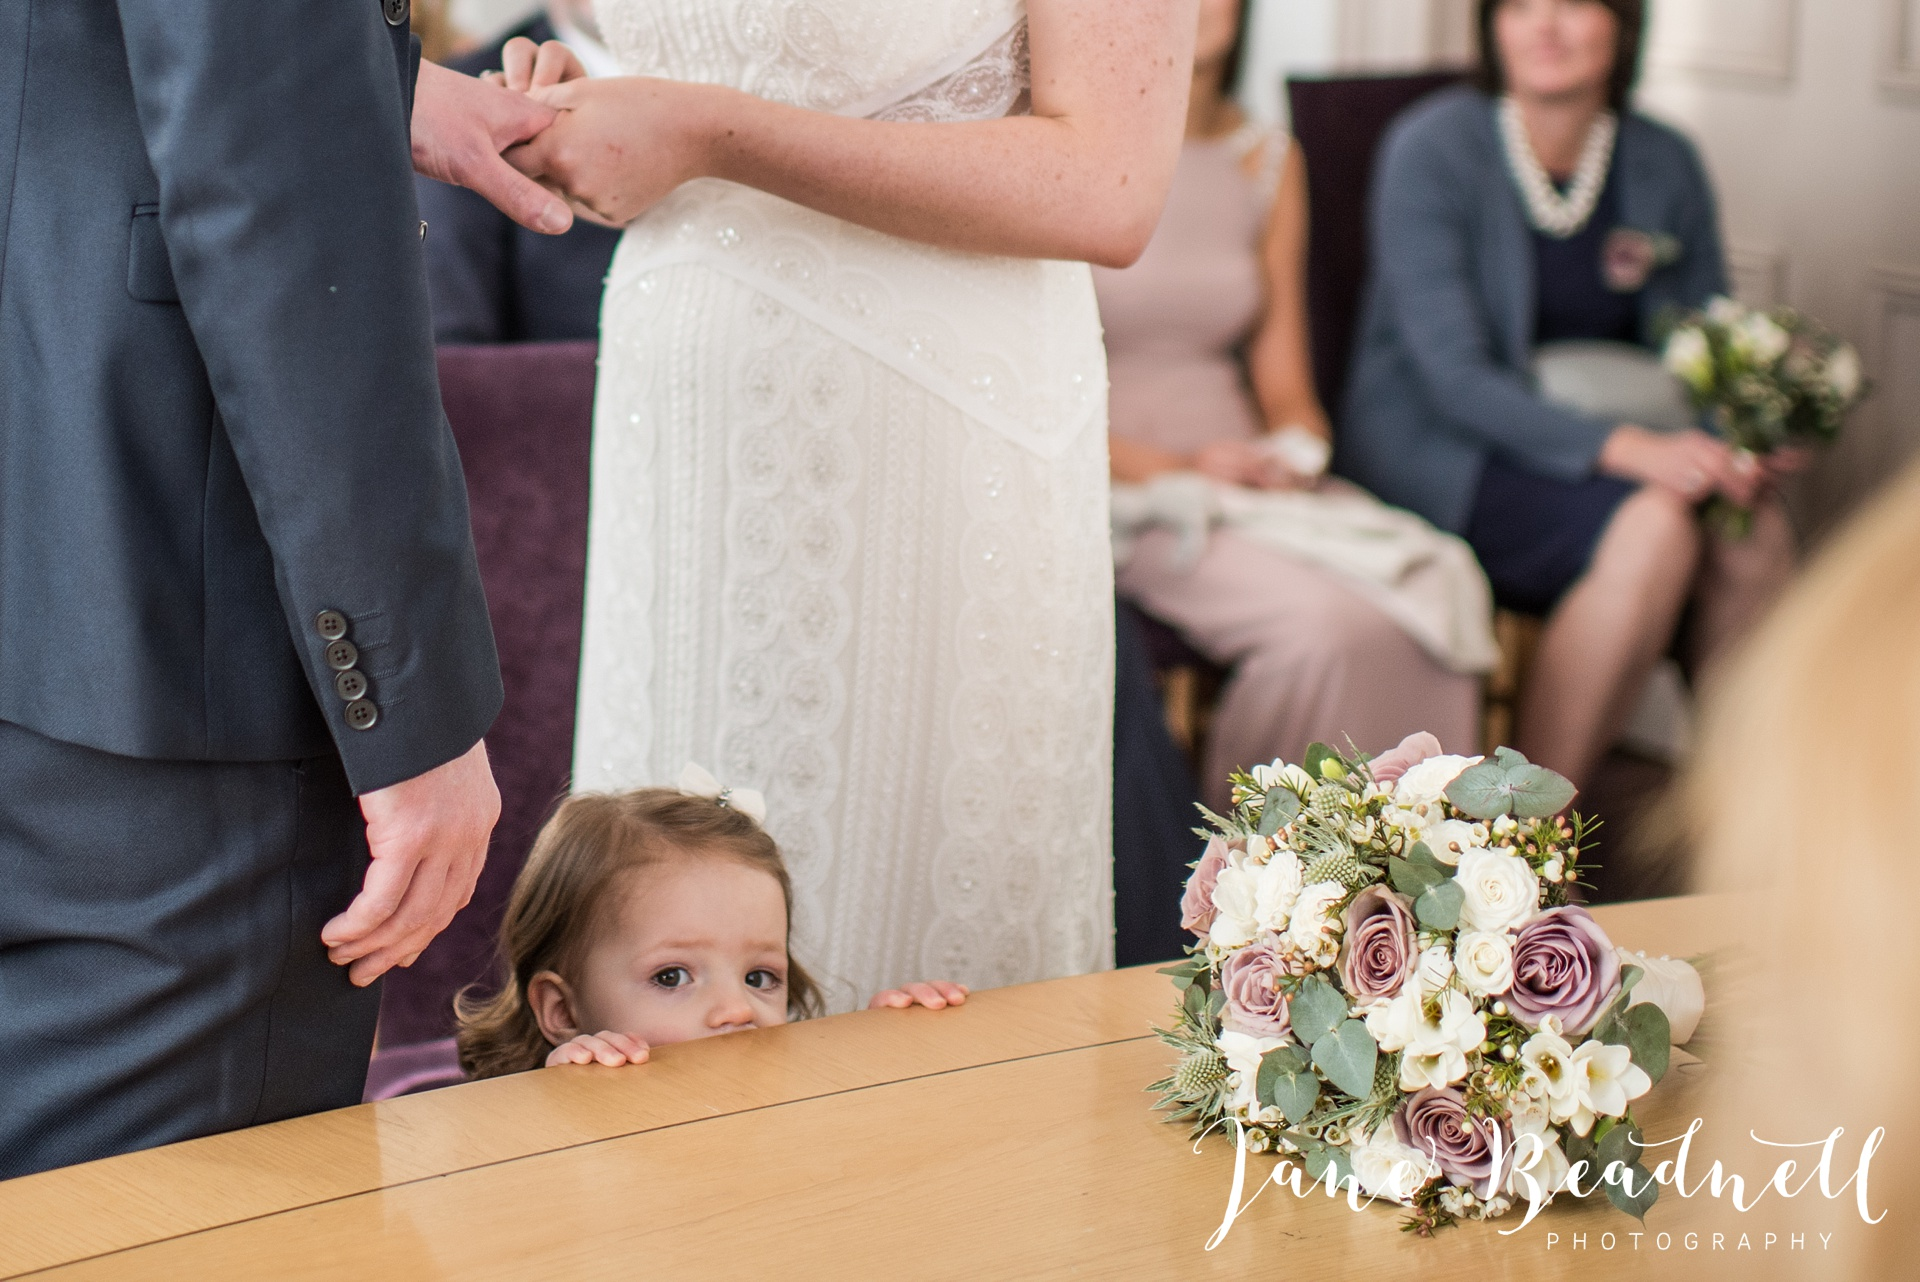 Wedding photography Cross Keys Leeds Wedding Jane Beadnell Photography_0034